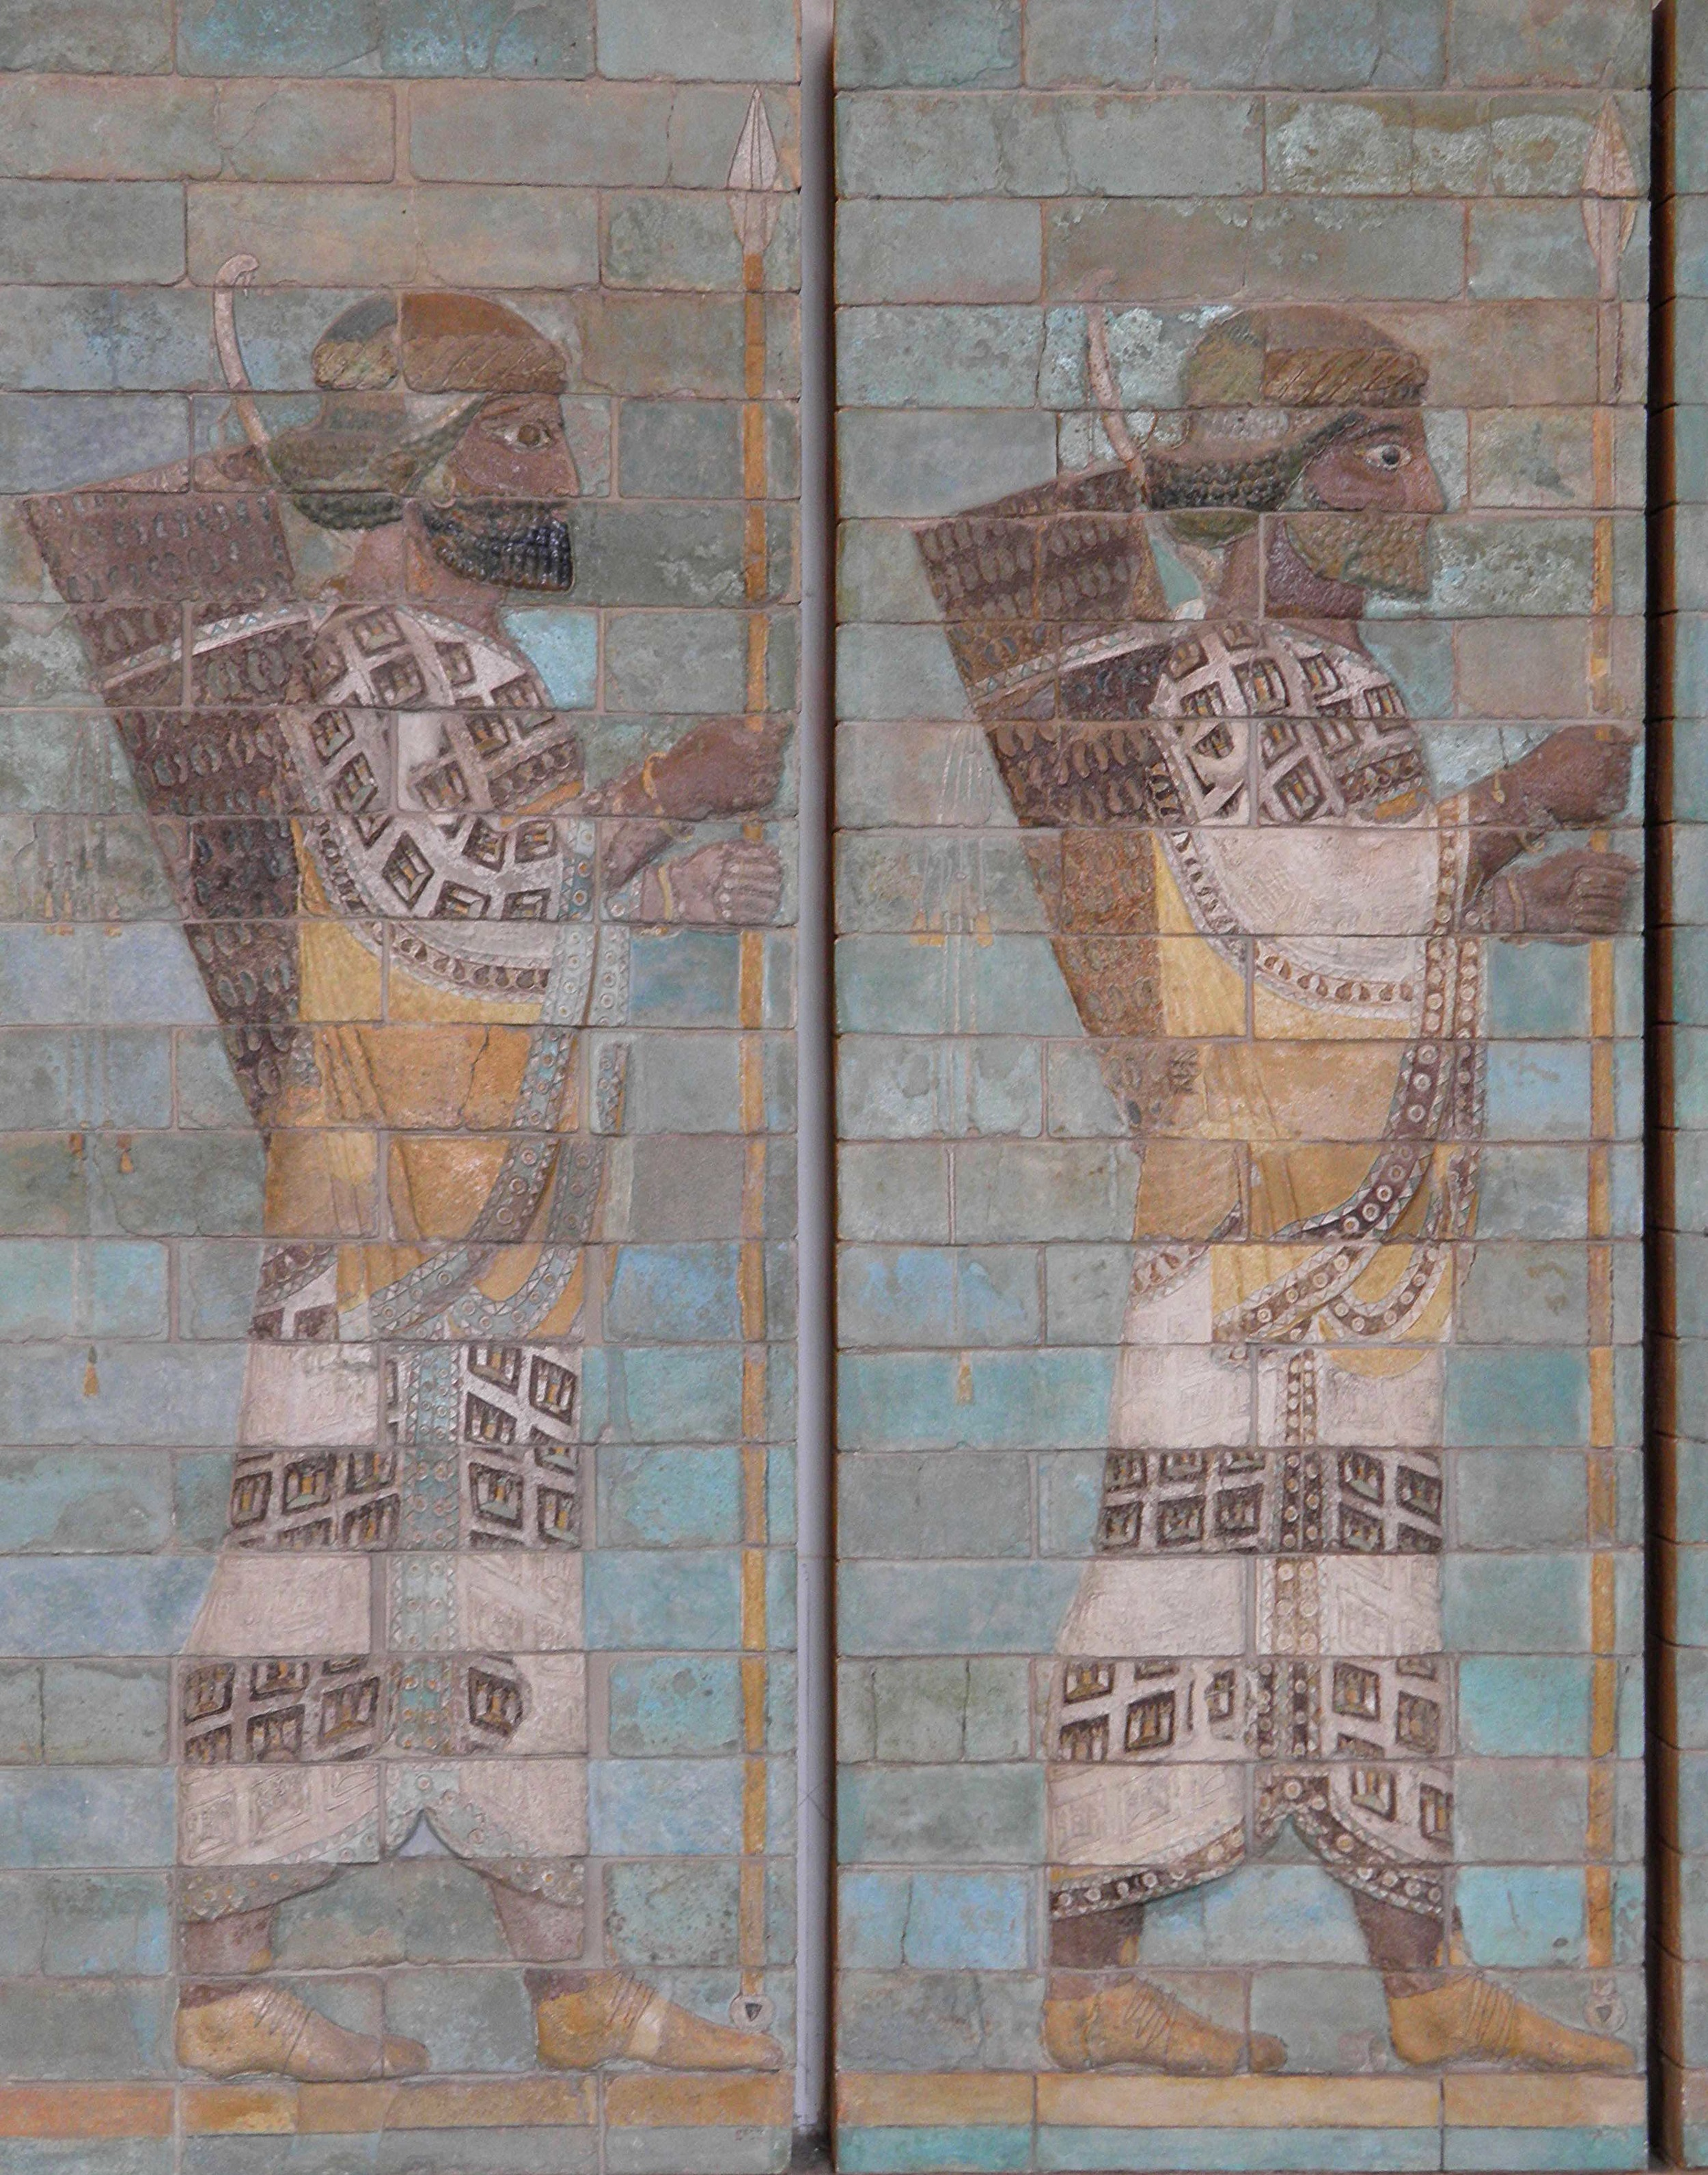 Frieze of Archers from the Palace of Darius I in Susa, Achaemenid Persian period ...